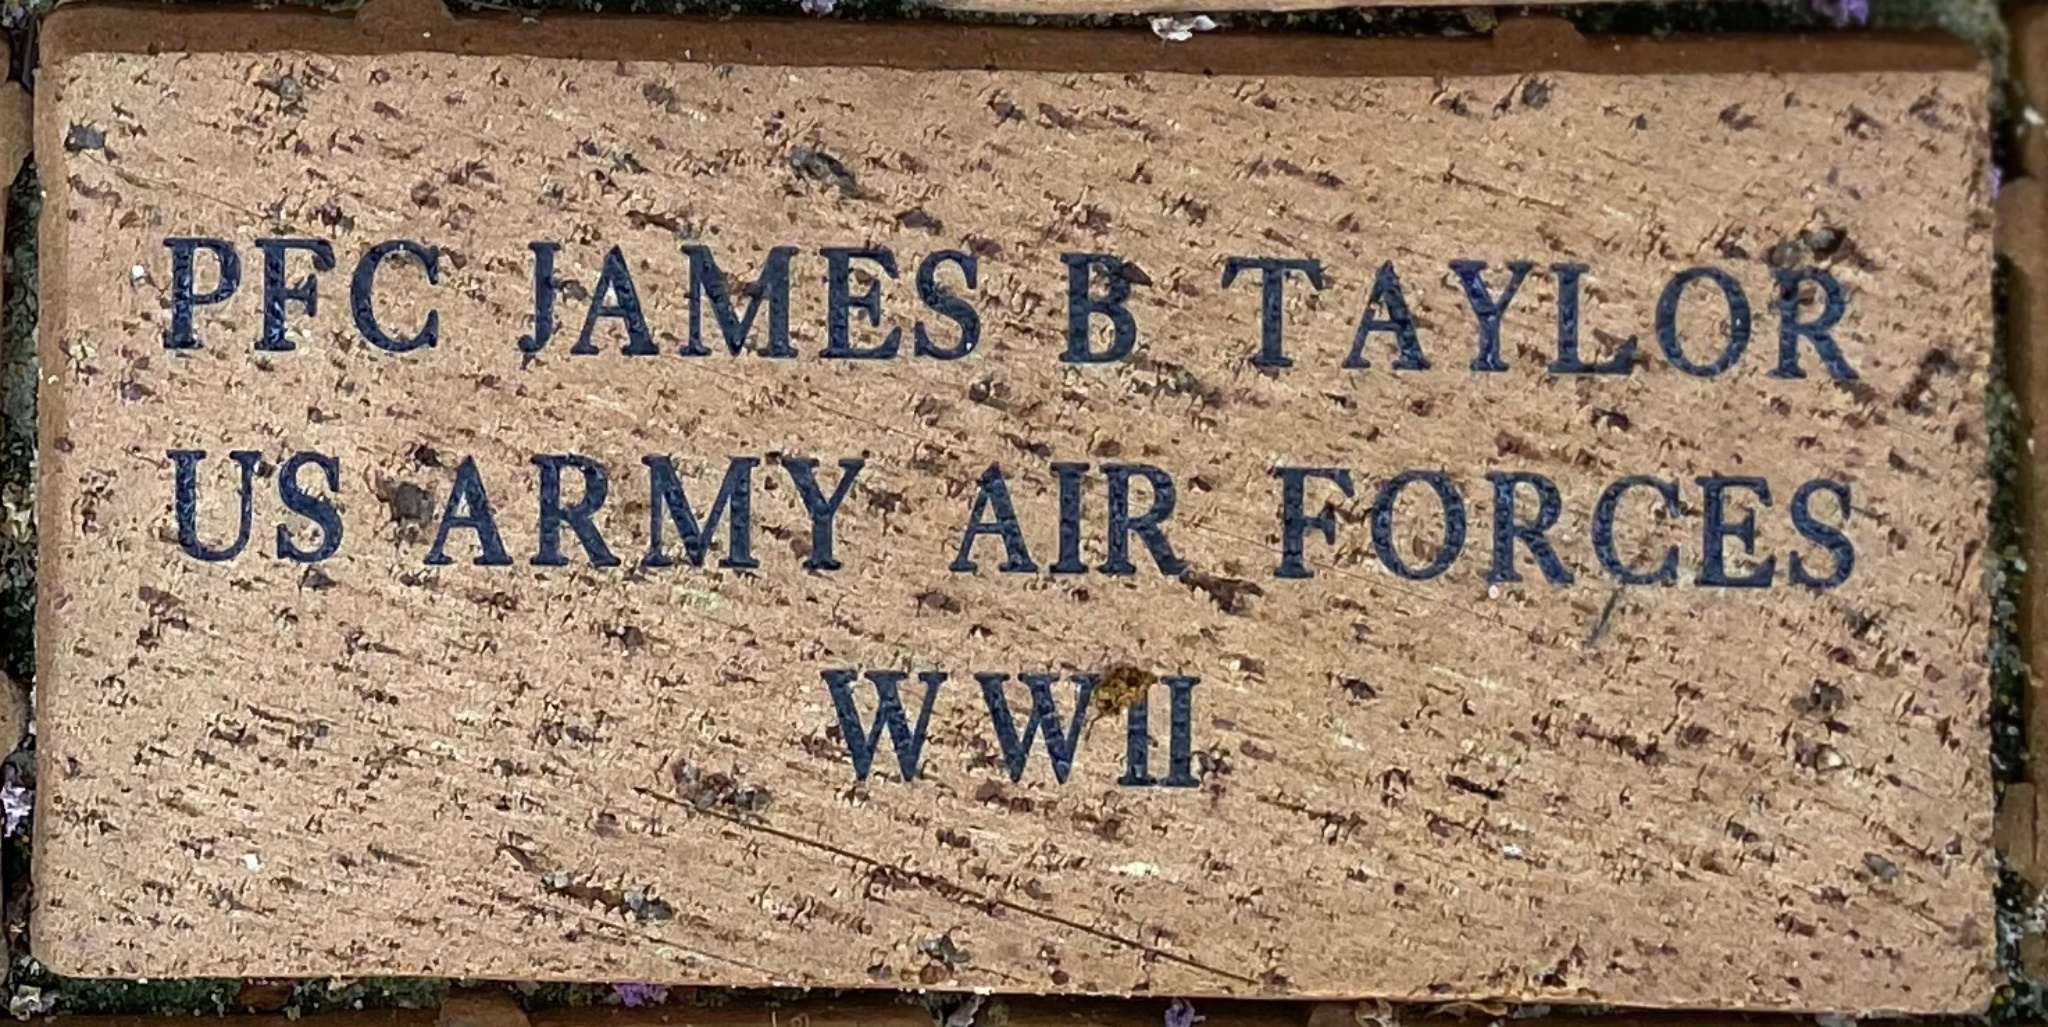 PCF JAMES B TAYLOR US ARMY AIR FORCES WWII